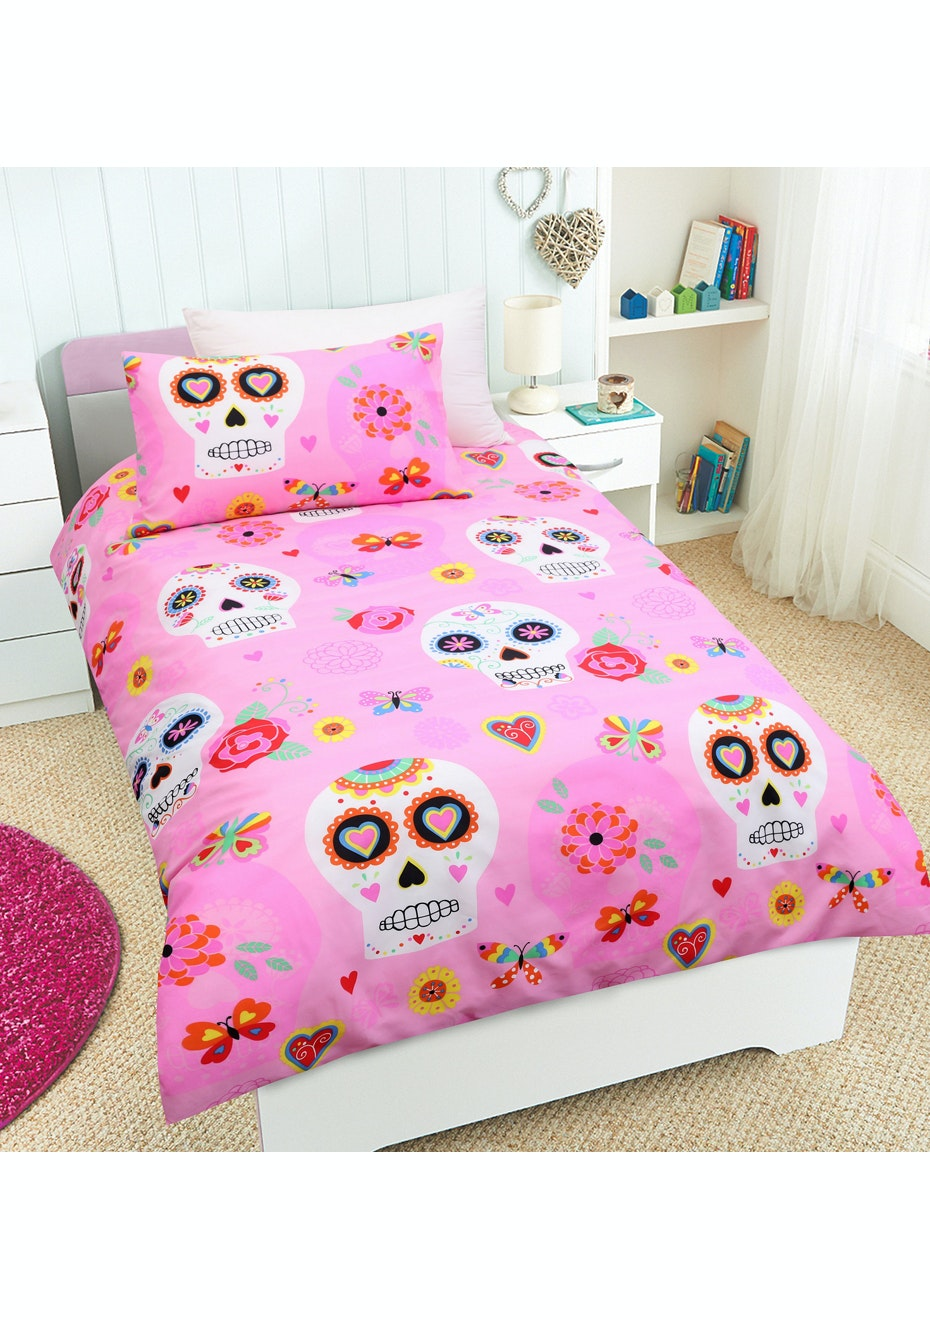 Candy Skulls Glow in the Dark Quilt Cover Set - Single Bed